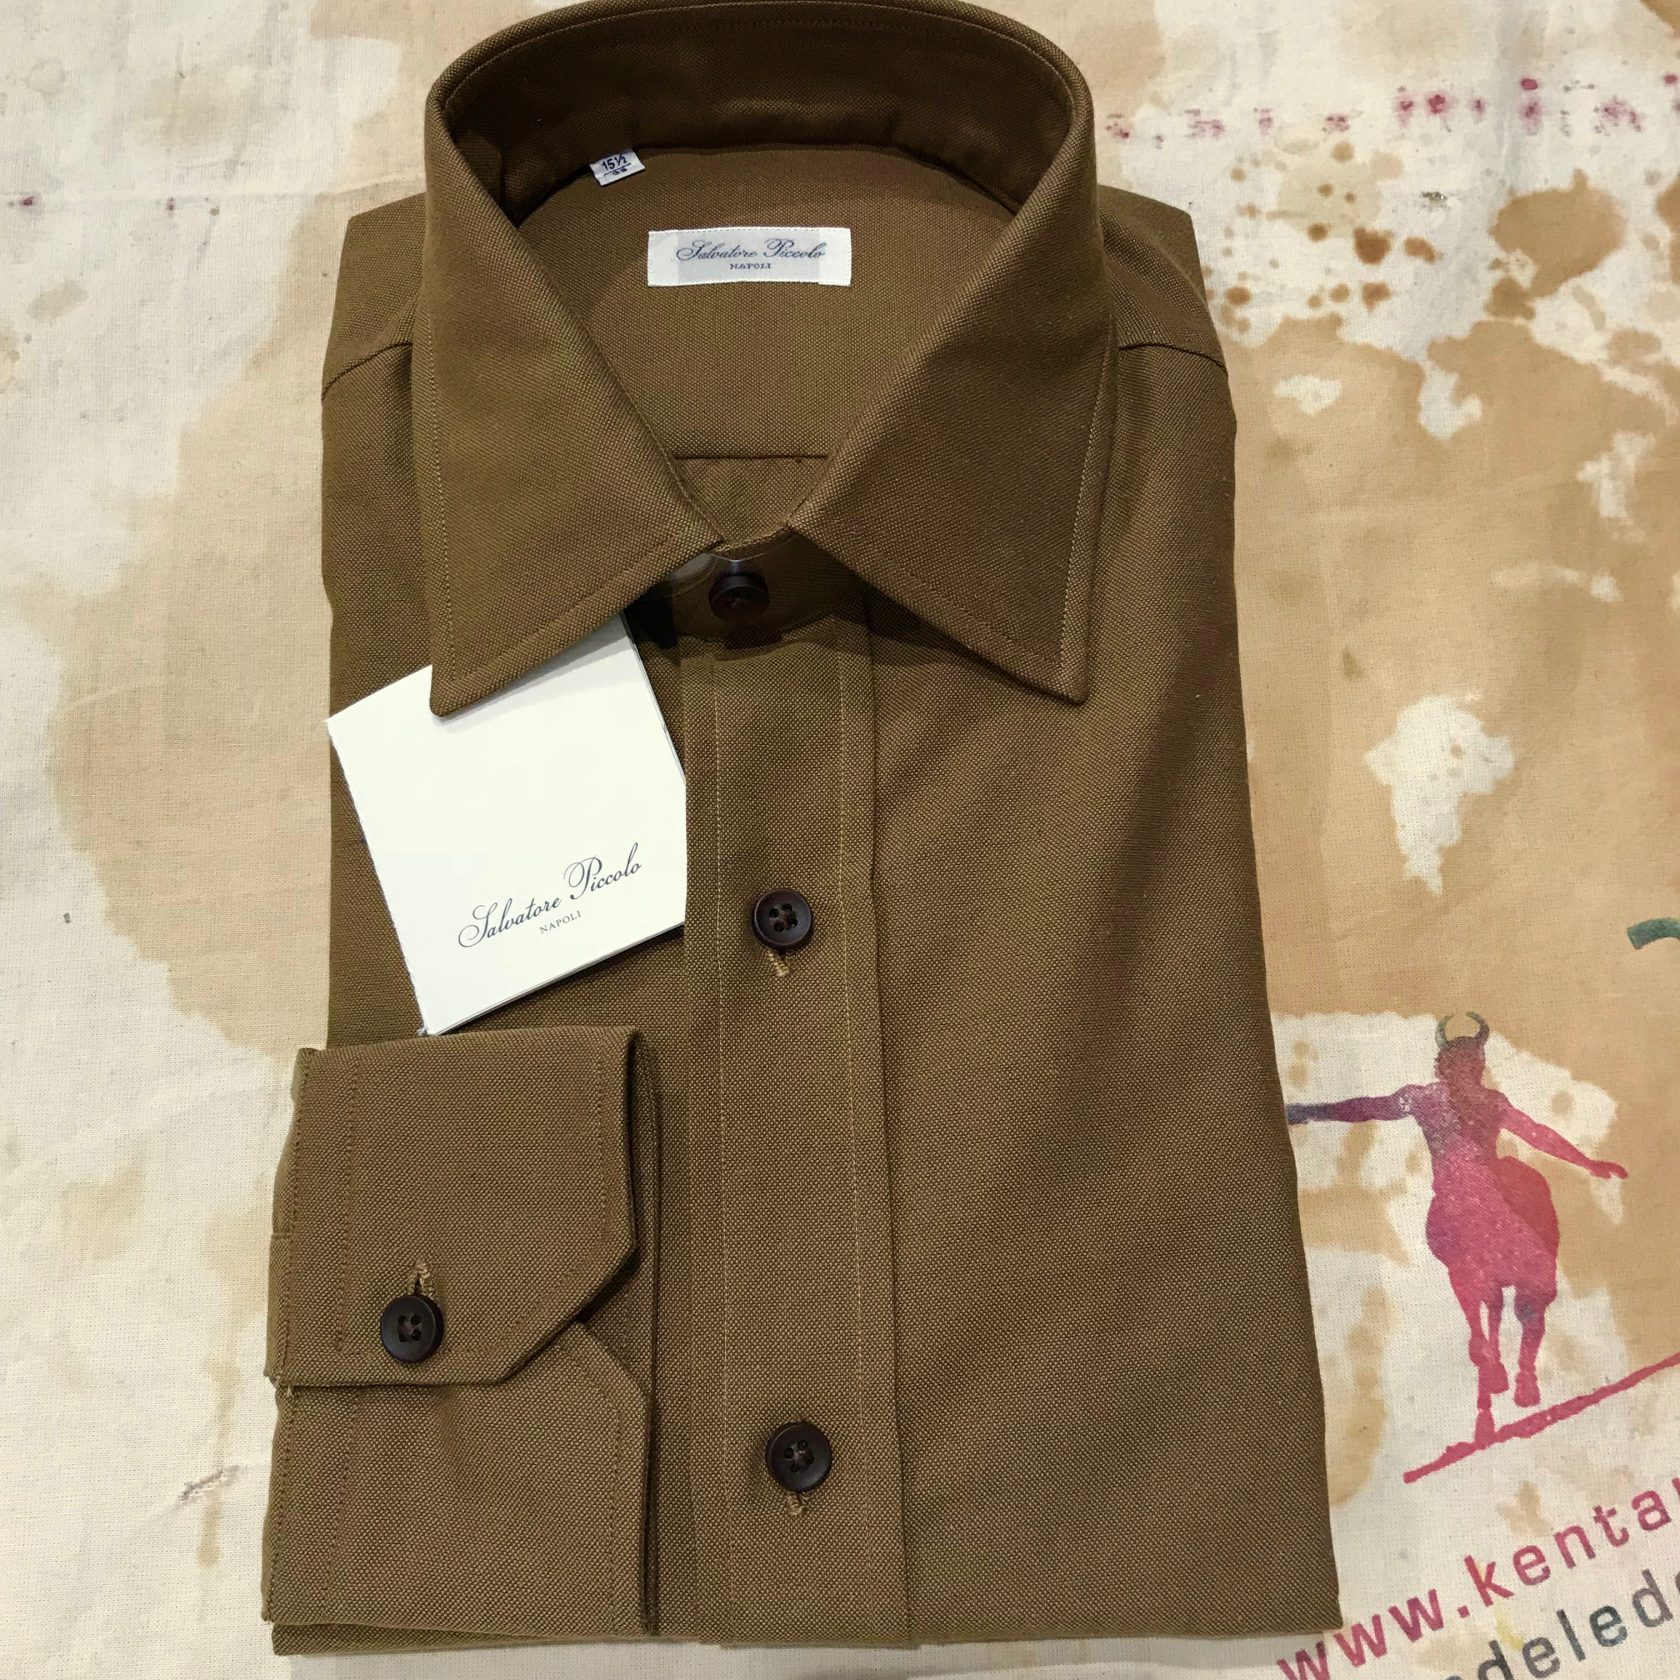 S.Piccolo plain olive-brown oxford shirt